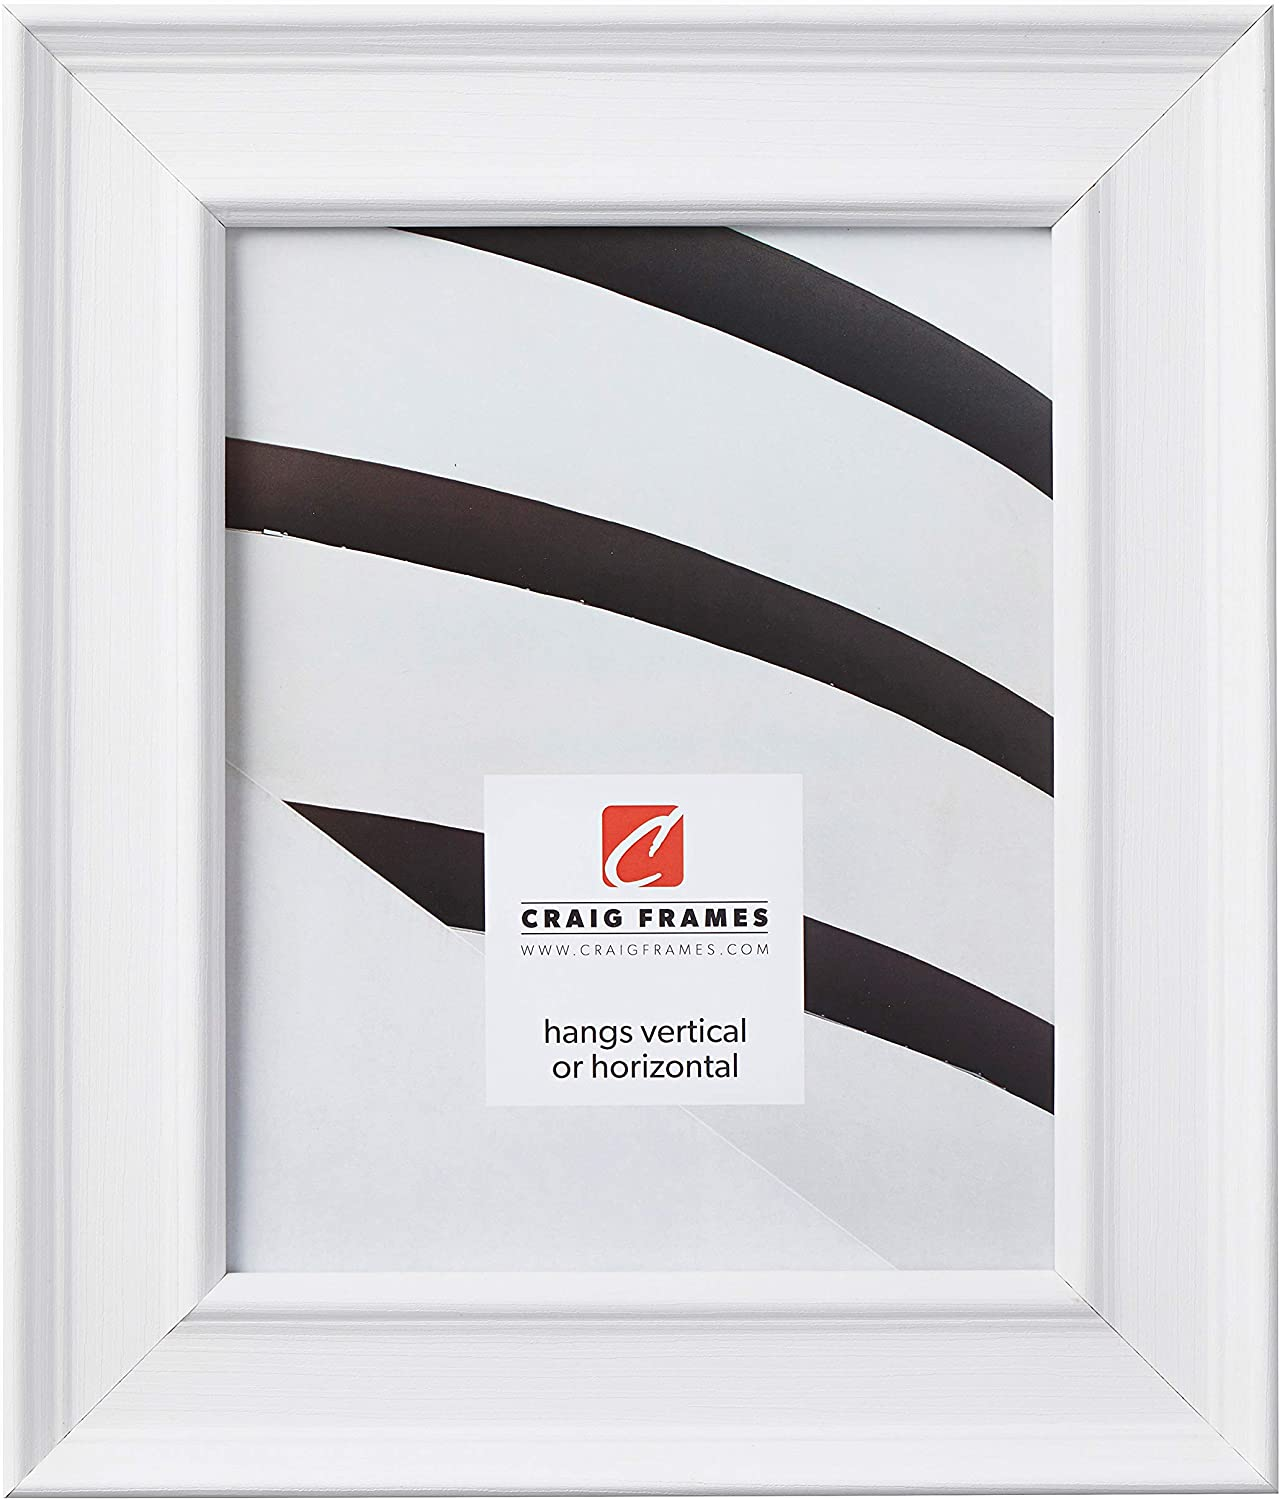 Craig Frames 76658954 20 by Frame Wood Composit Sales Max 46% OFF results No. 1 Picture 30-Inch